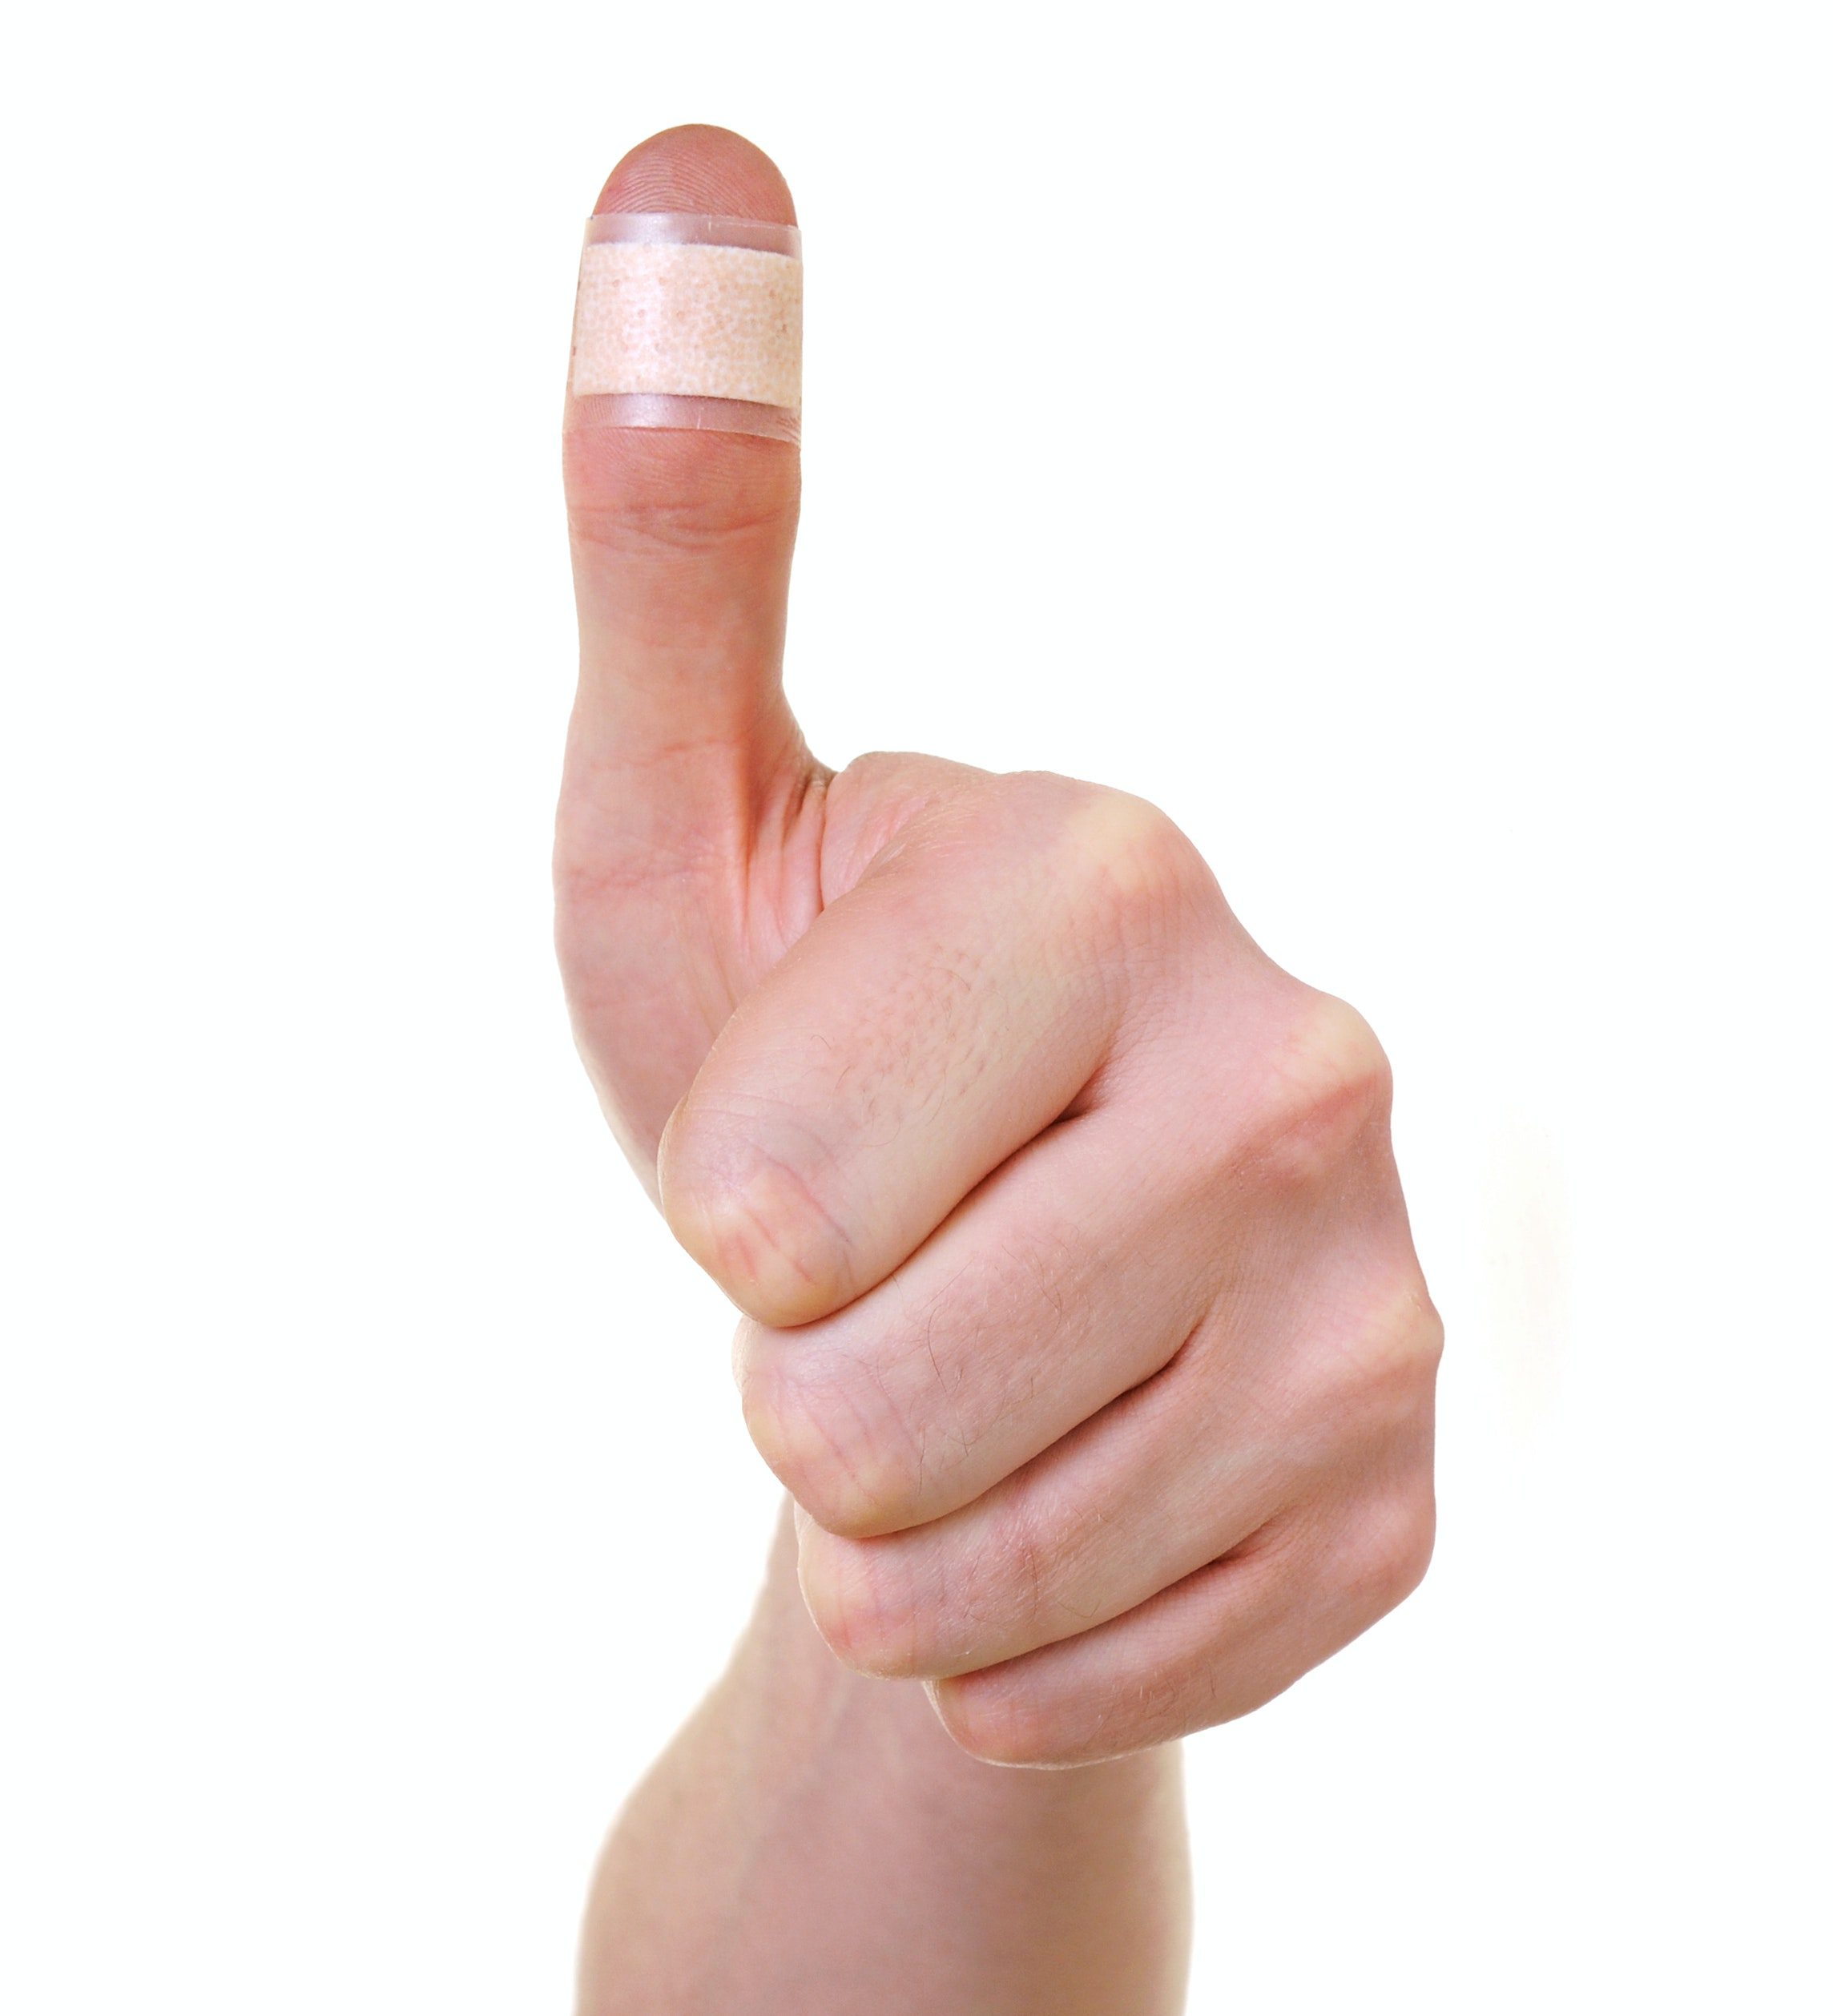 An image depicting a person suffering from thumb pain near the fingernail symptoms